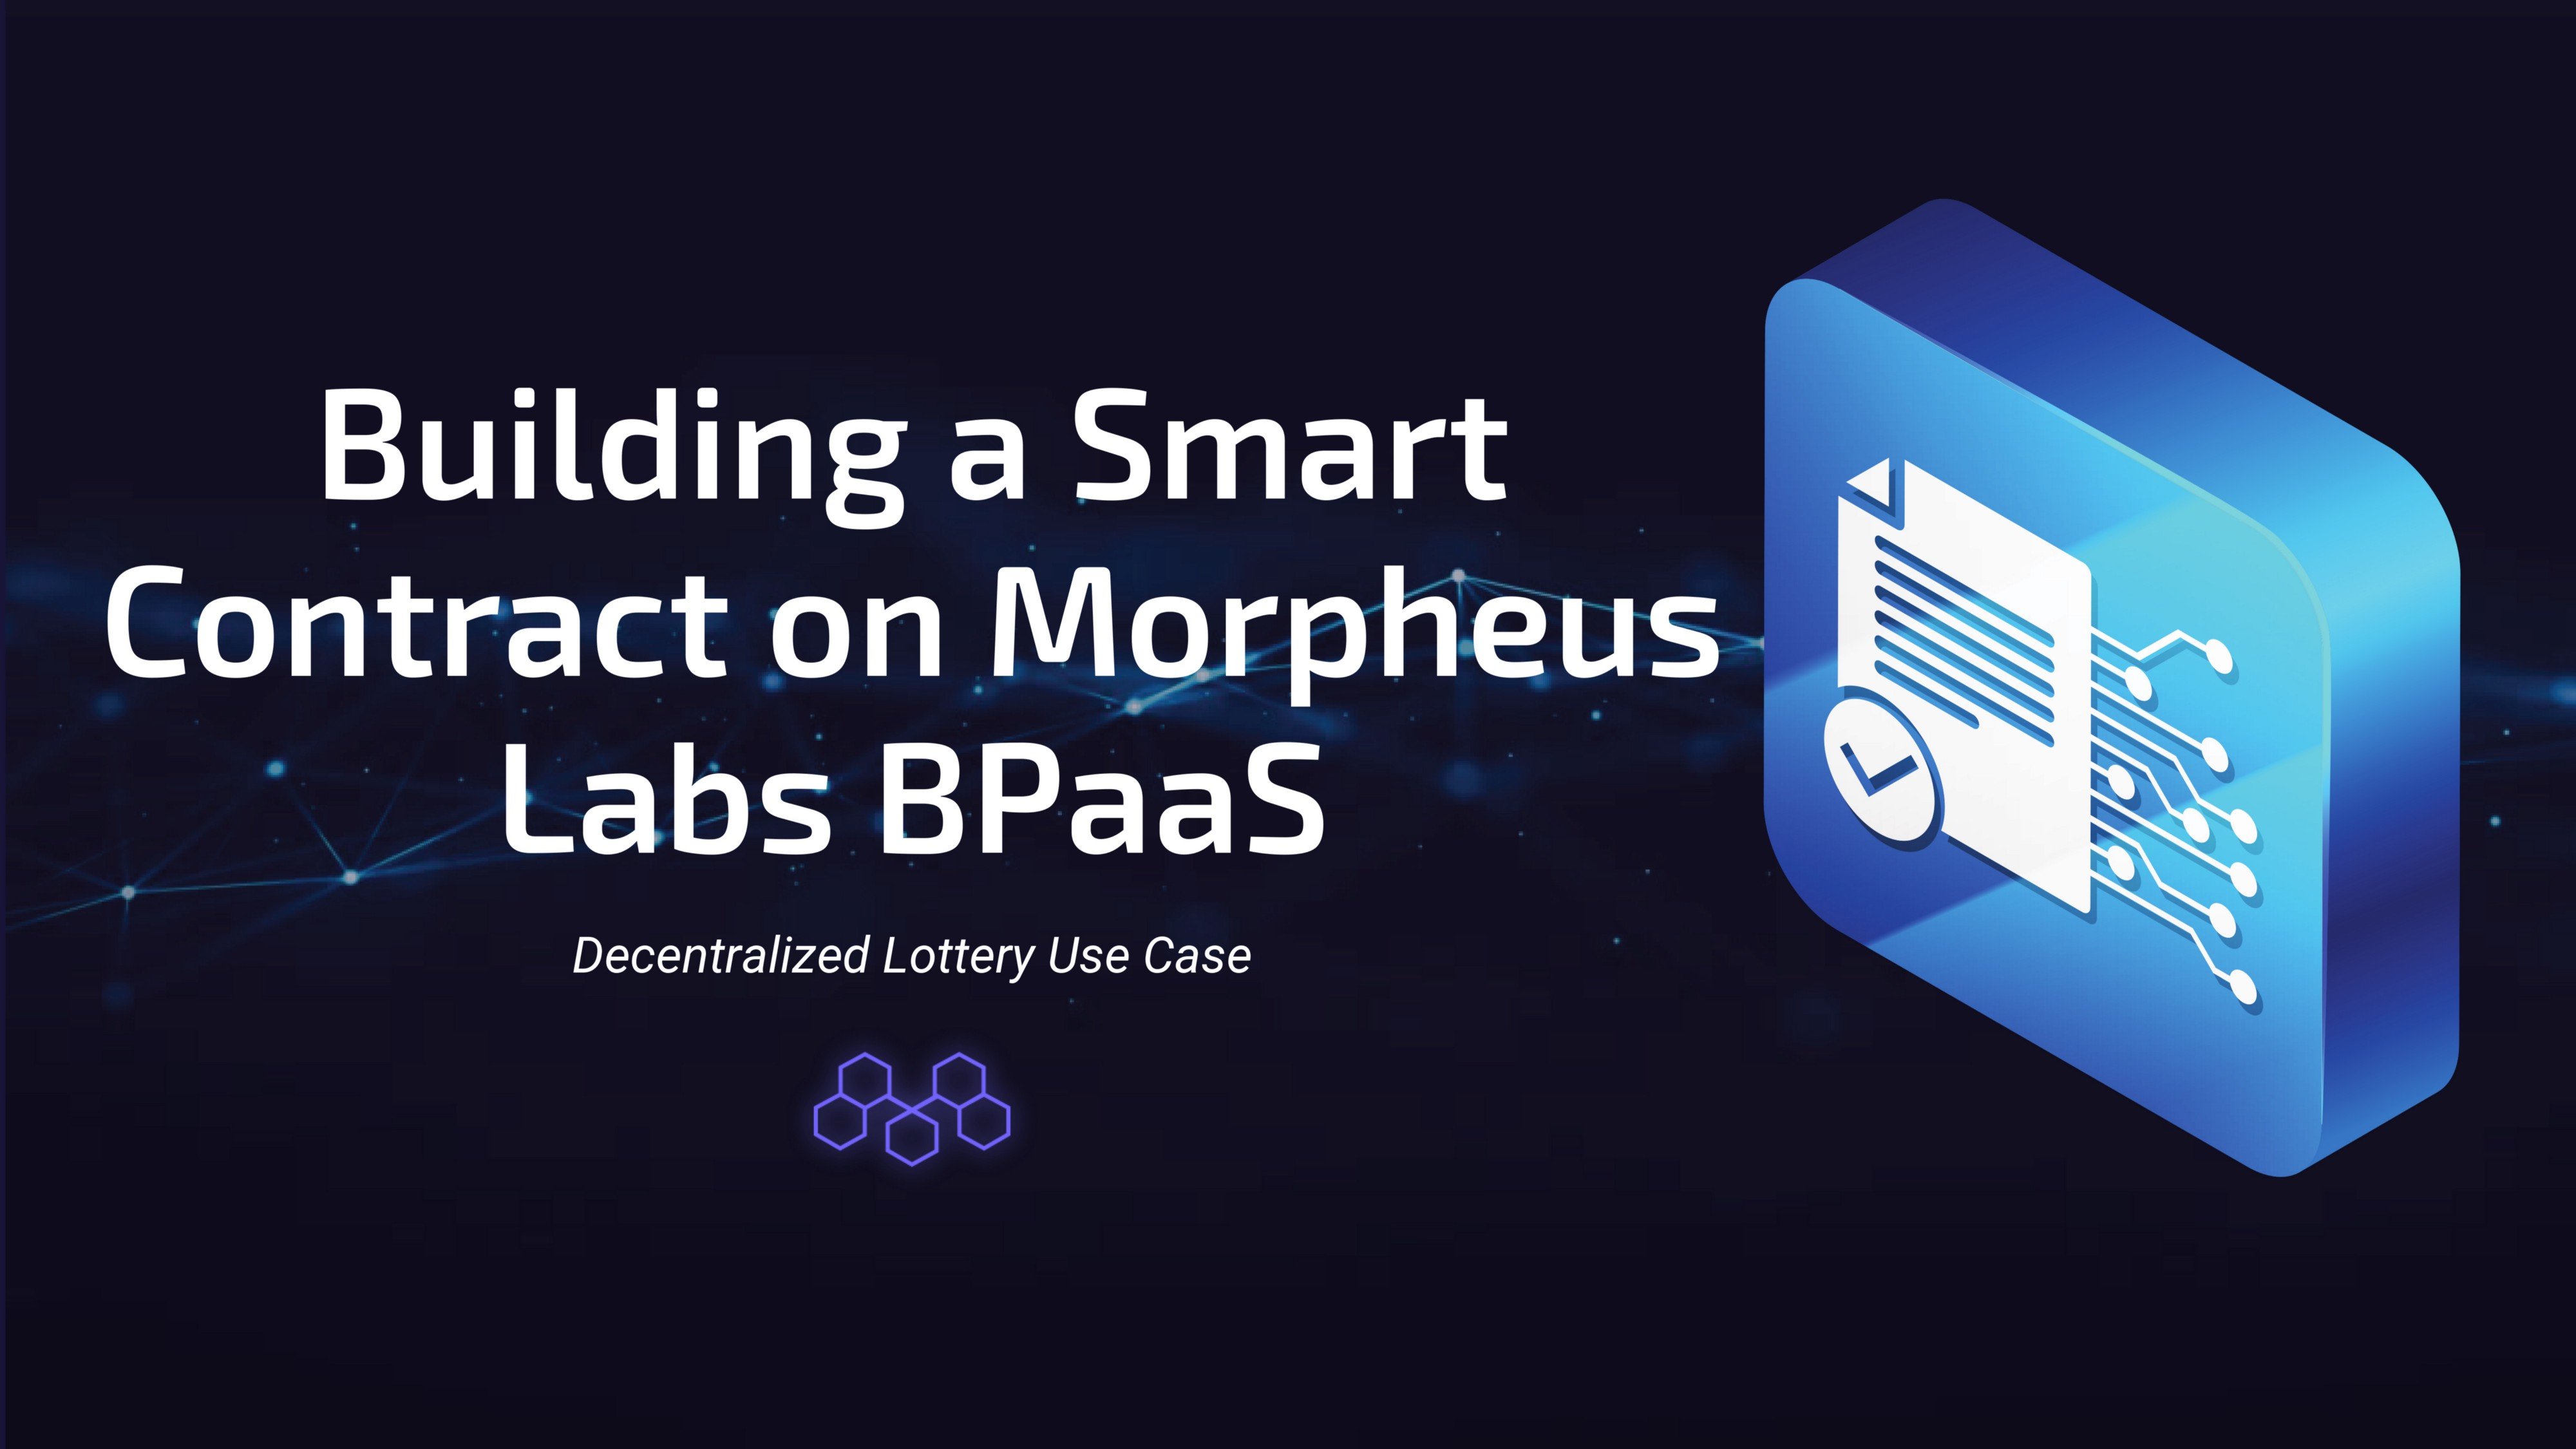 Building a Smart Contract on Morpheus Labs BPaaS